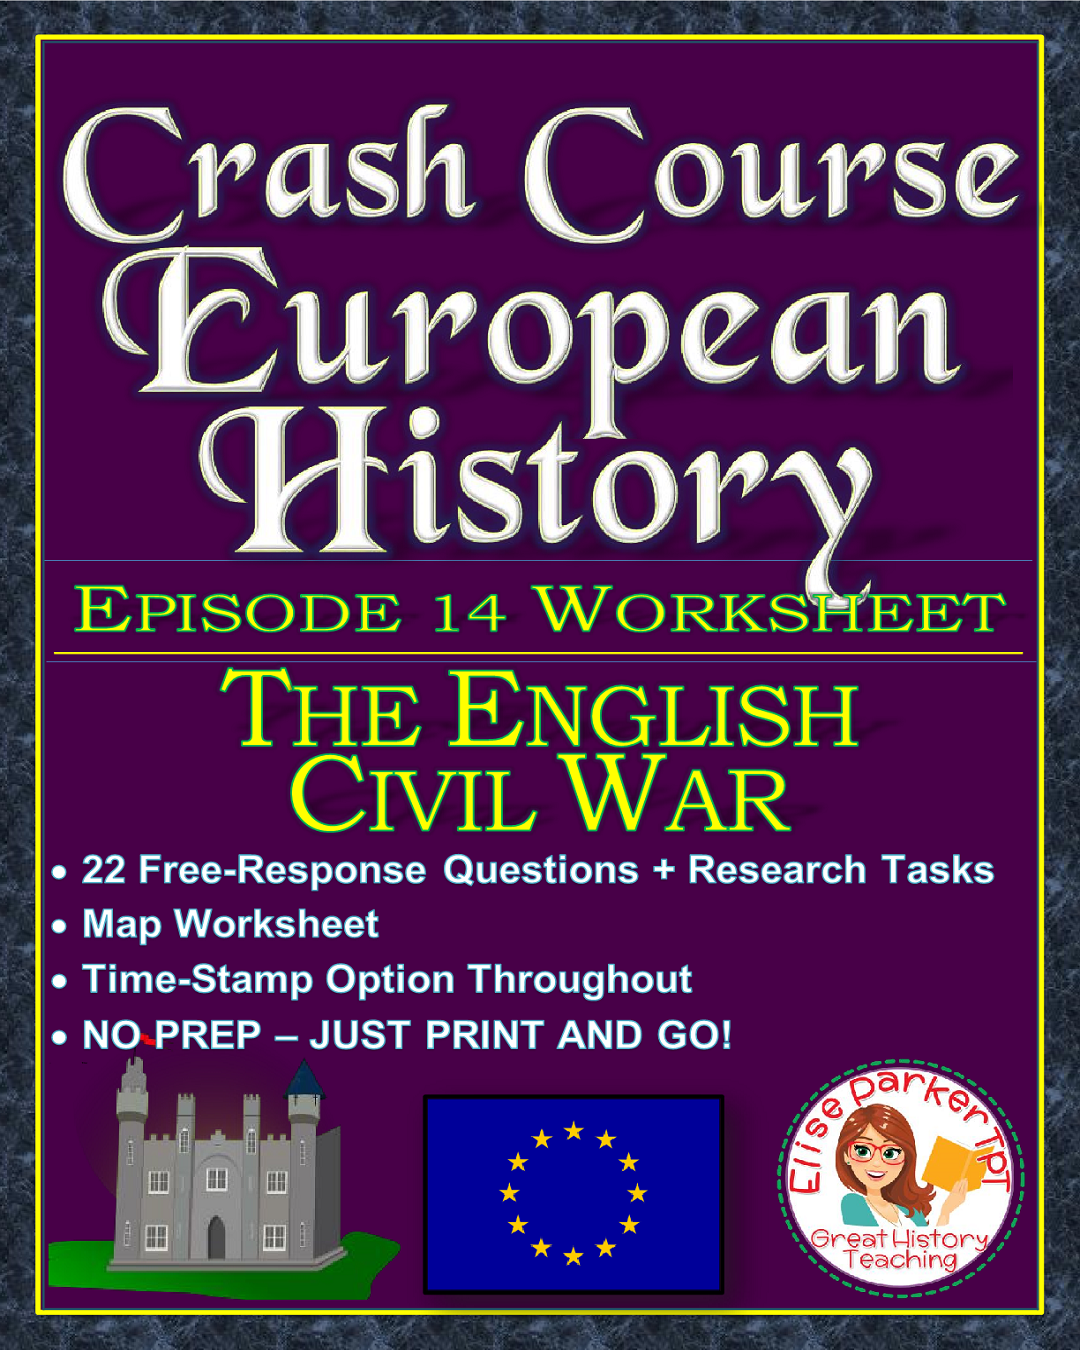 Crash Course European History Episode 14 Worksheet The